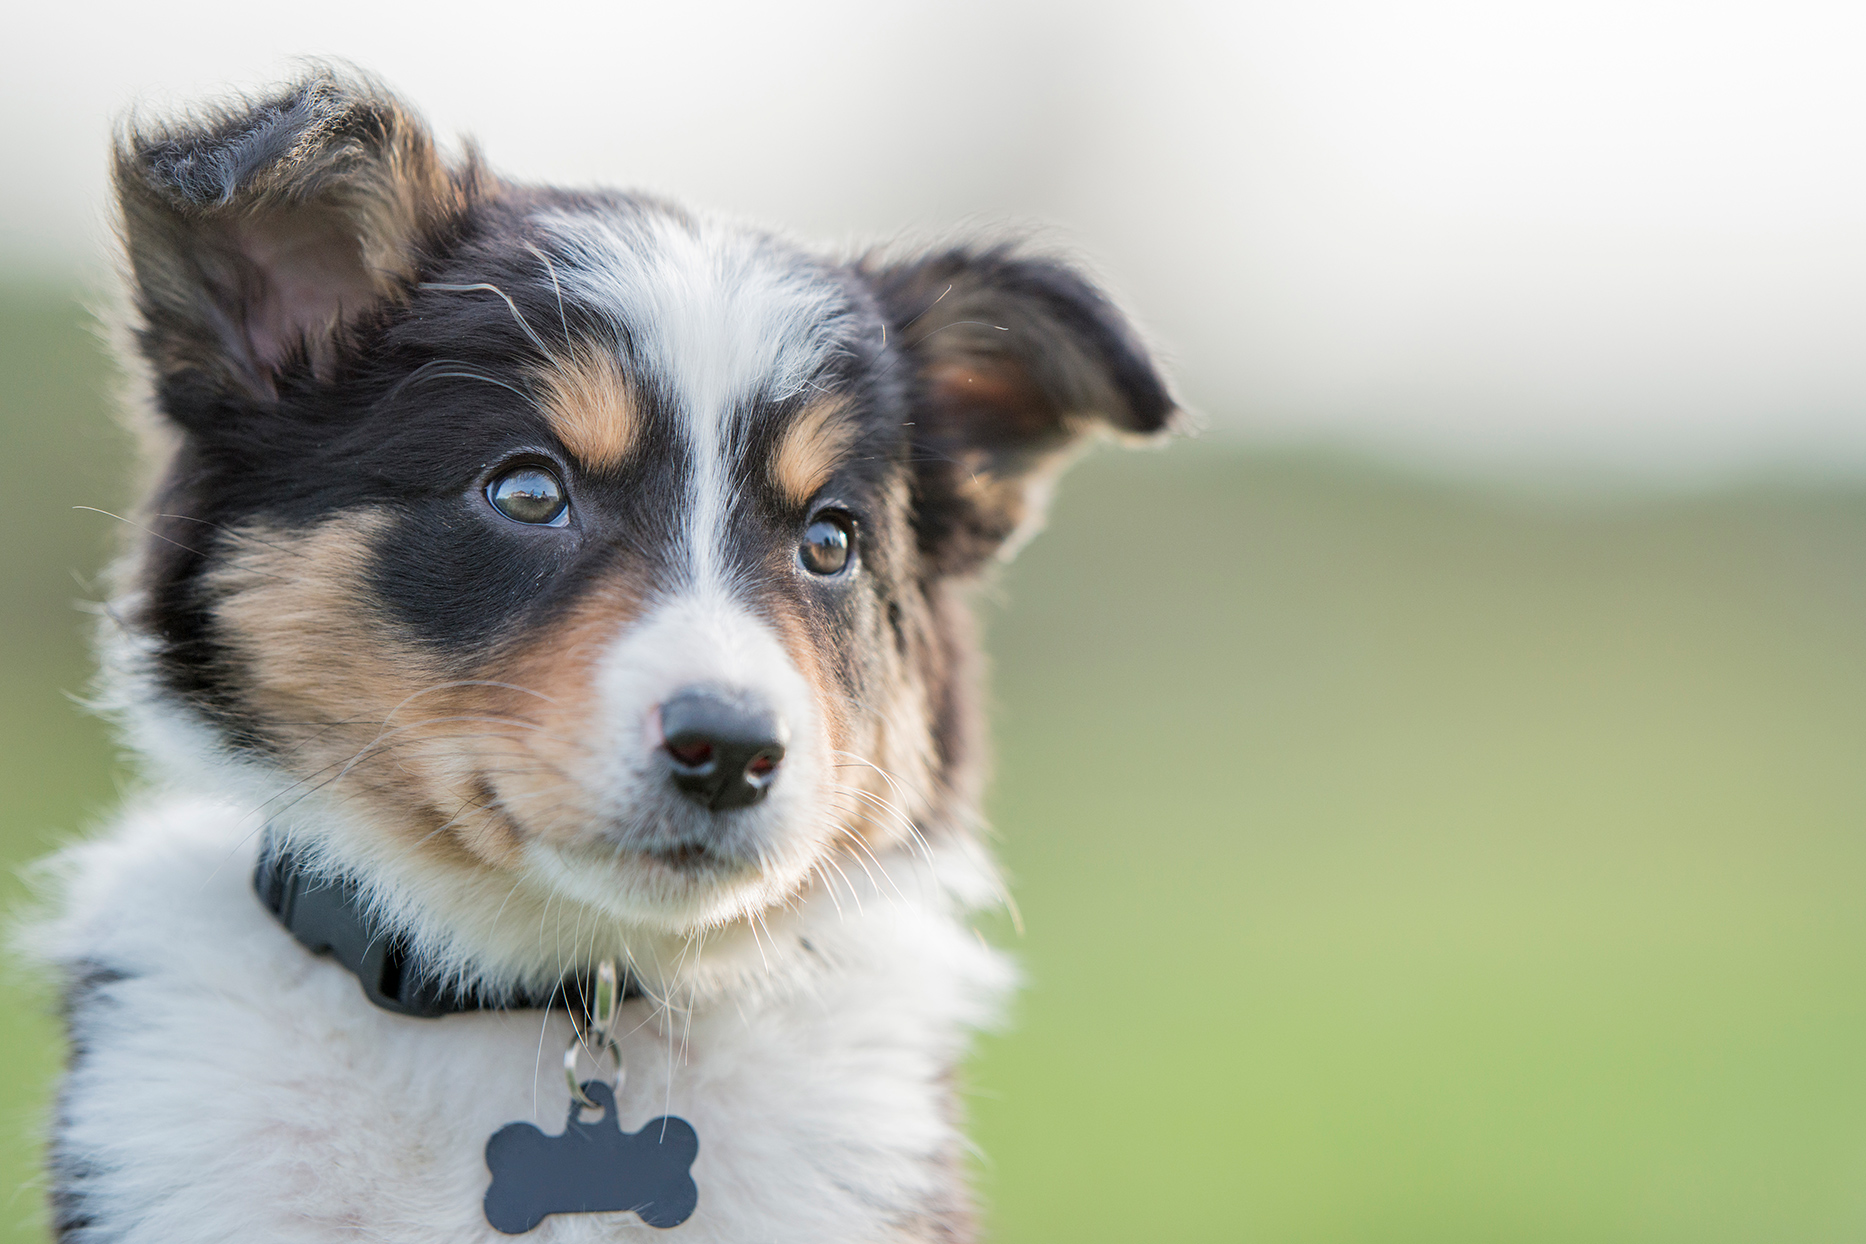 border collie puppy outdoors